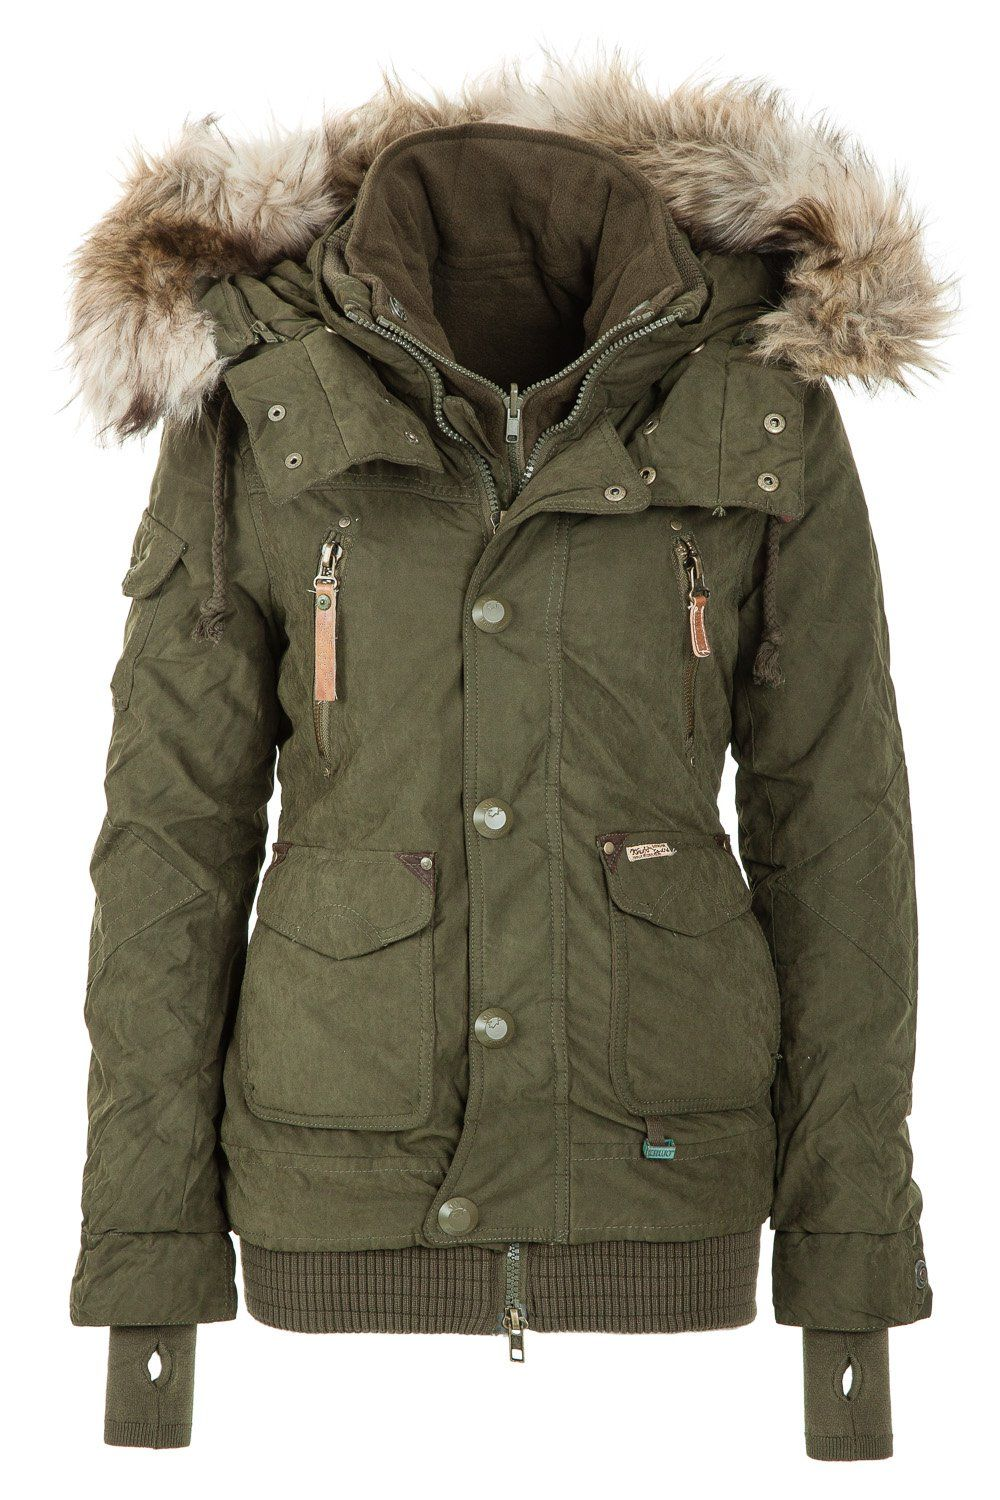 khujo womens winter jacket margret olive 320 httpwww